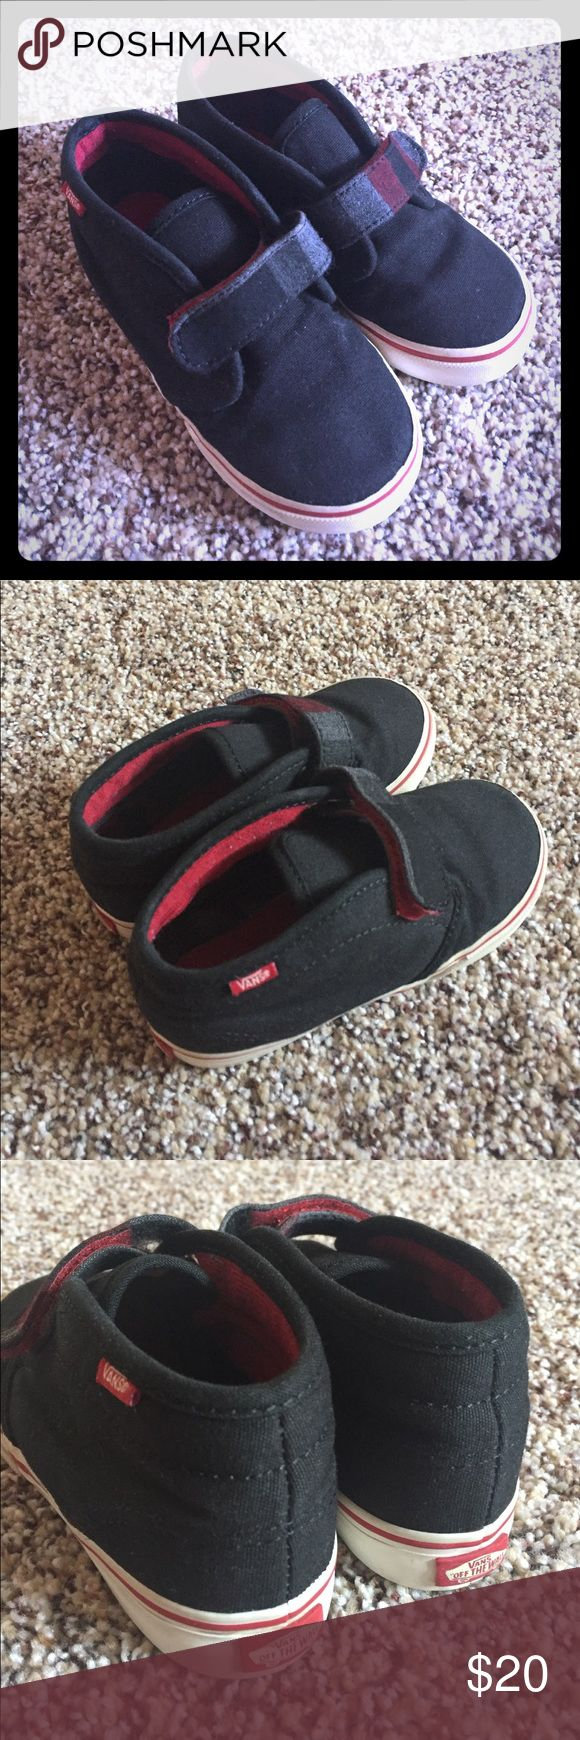 Toddler boy Vans Very good condition! Have been worn few times Vans Shoes Sneakers